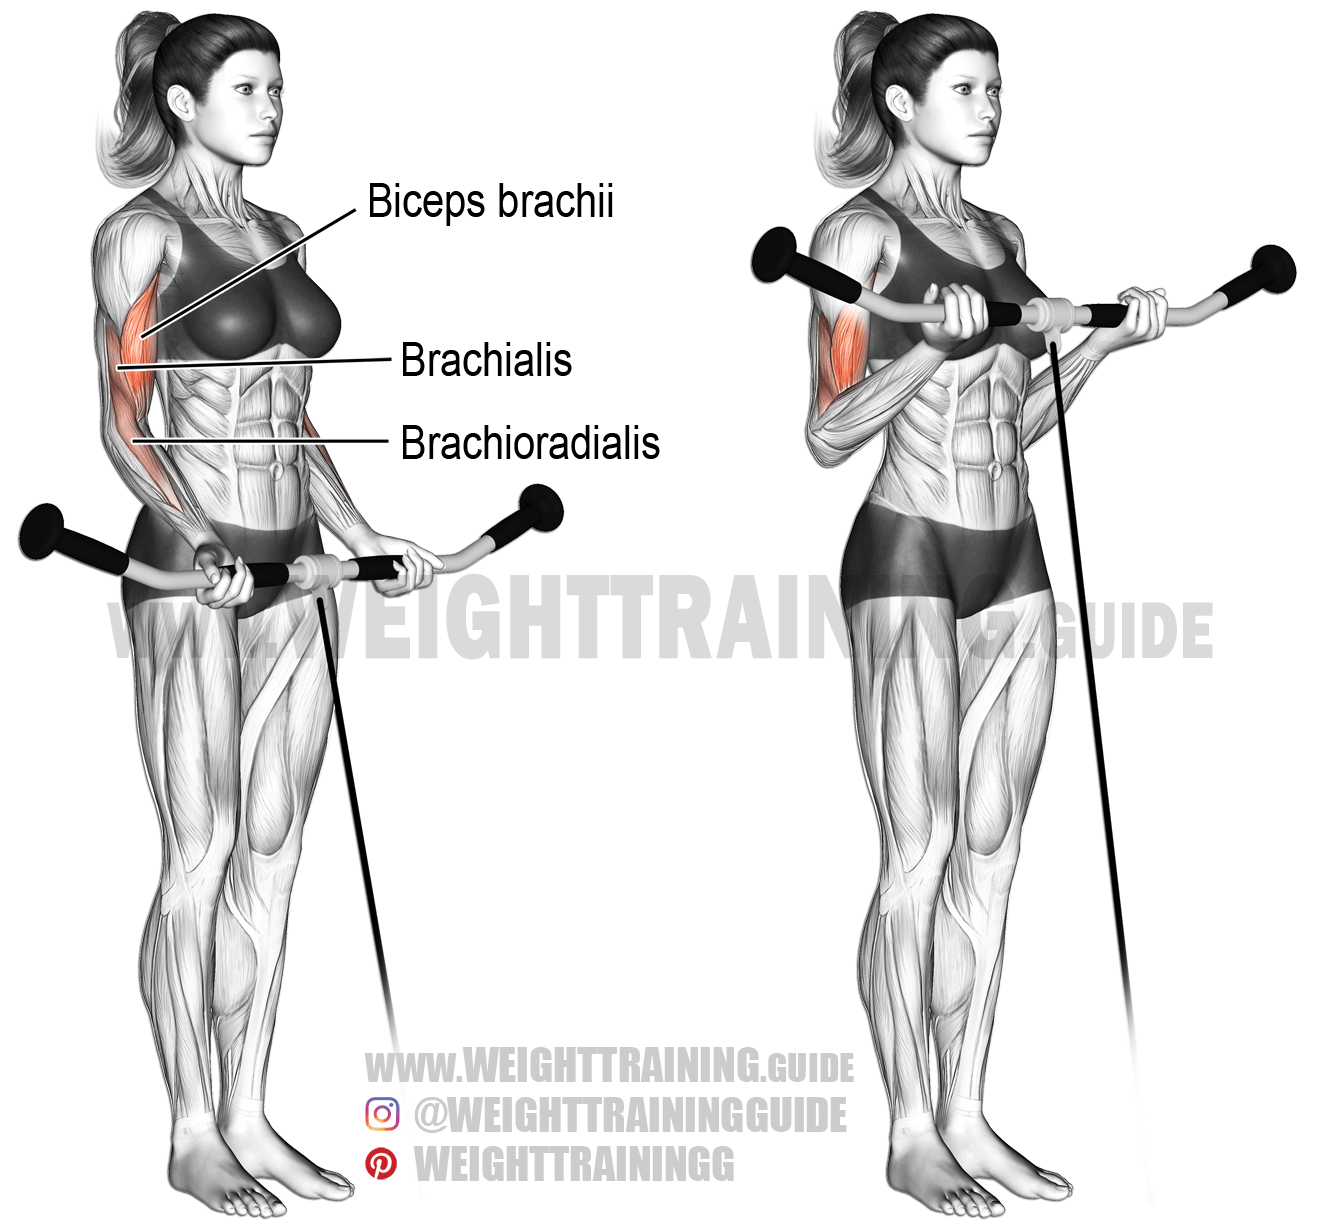 Cable Curl Exercise Instructions And Video